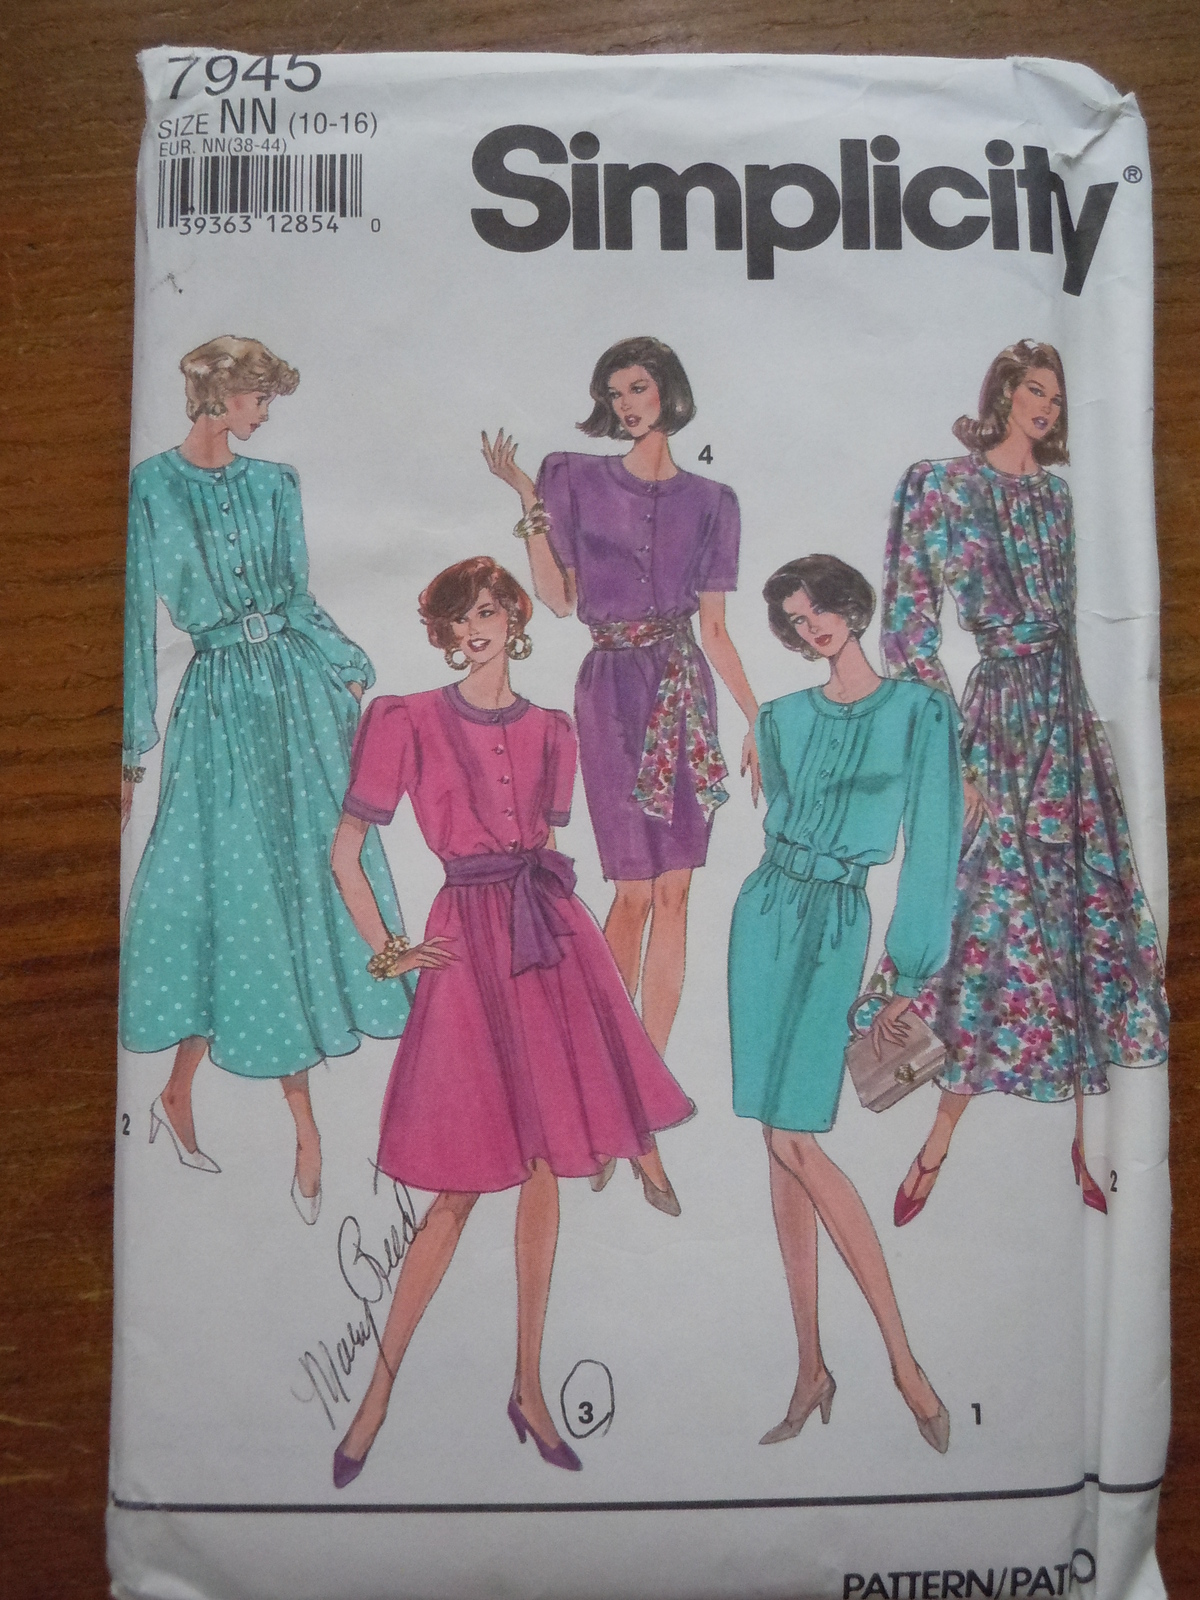 Primary image for Simplicity Misses / Misses Petite Size10-16 Dress With Full or Slim Skirt  # 794